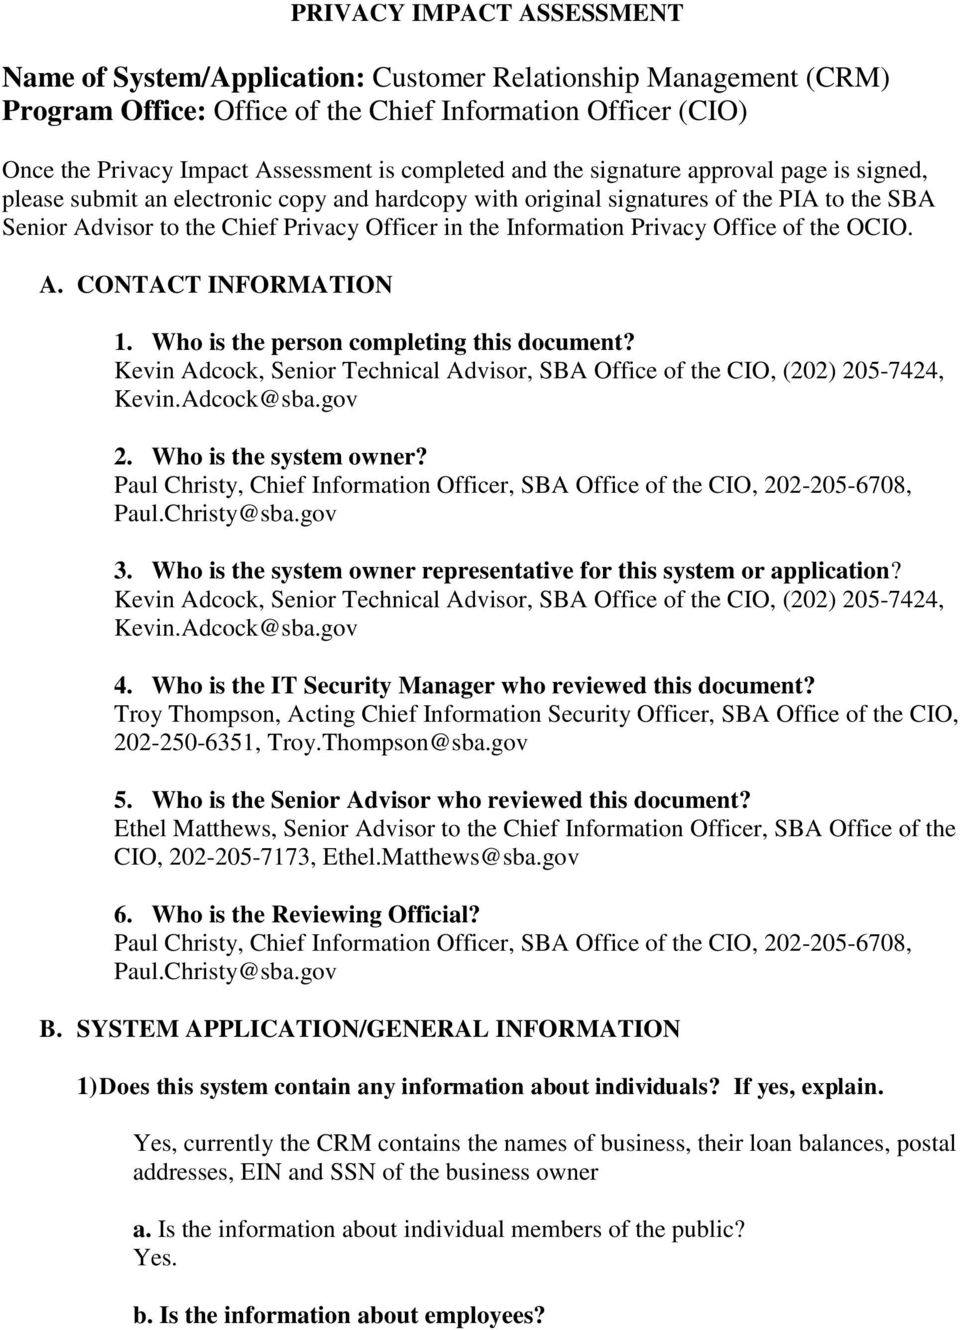 Information Privacy Office of the OCIO. A. CONTACT INFORMATION 1. Who is the person completing this document? Kevin Adcock, Senior Technical Advisor, SBA Office of the CIO, (202) 205-7424, Kevin.